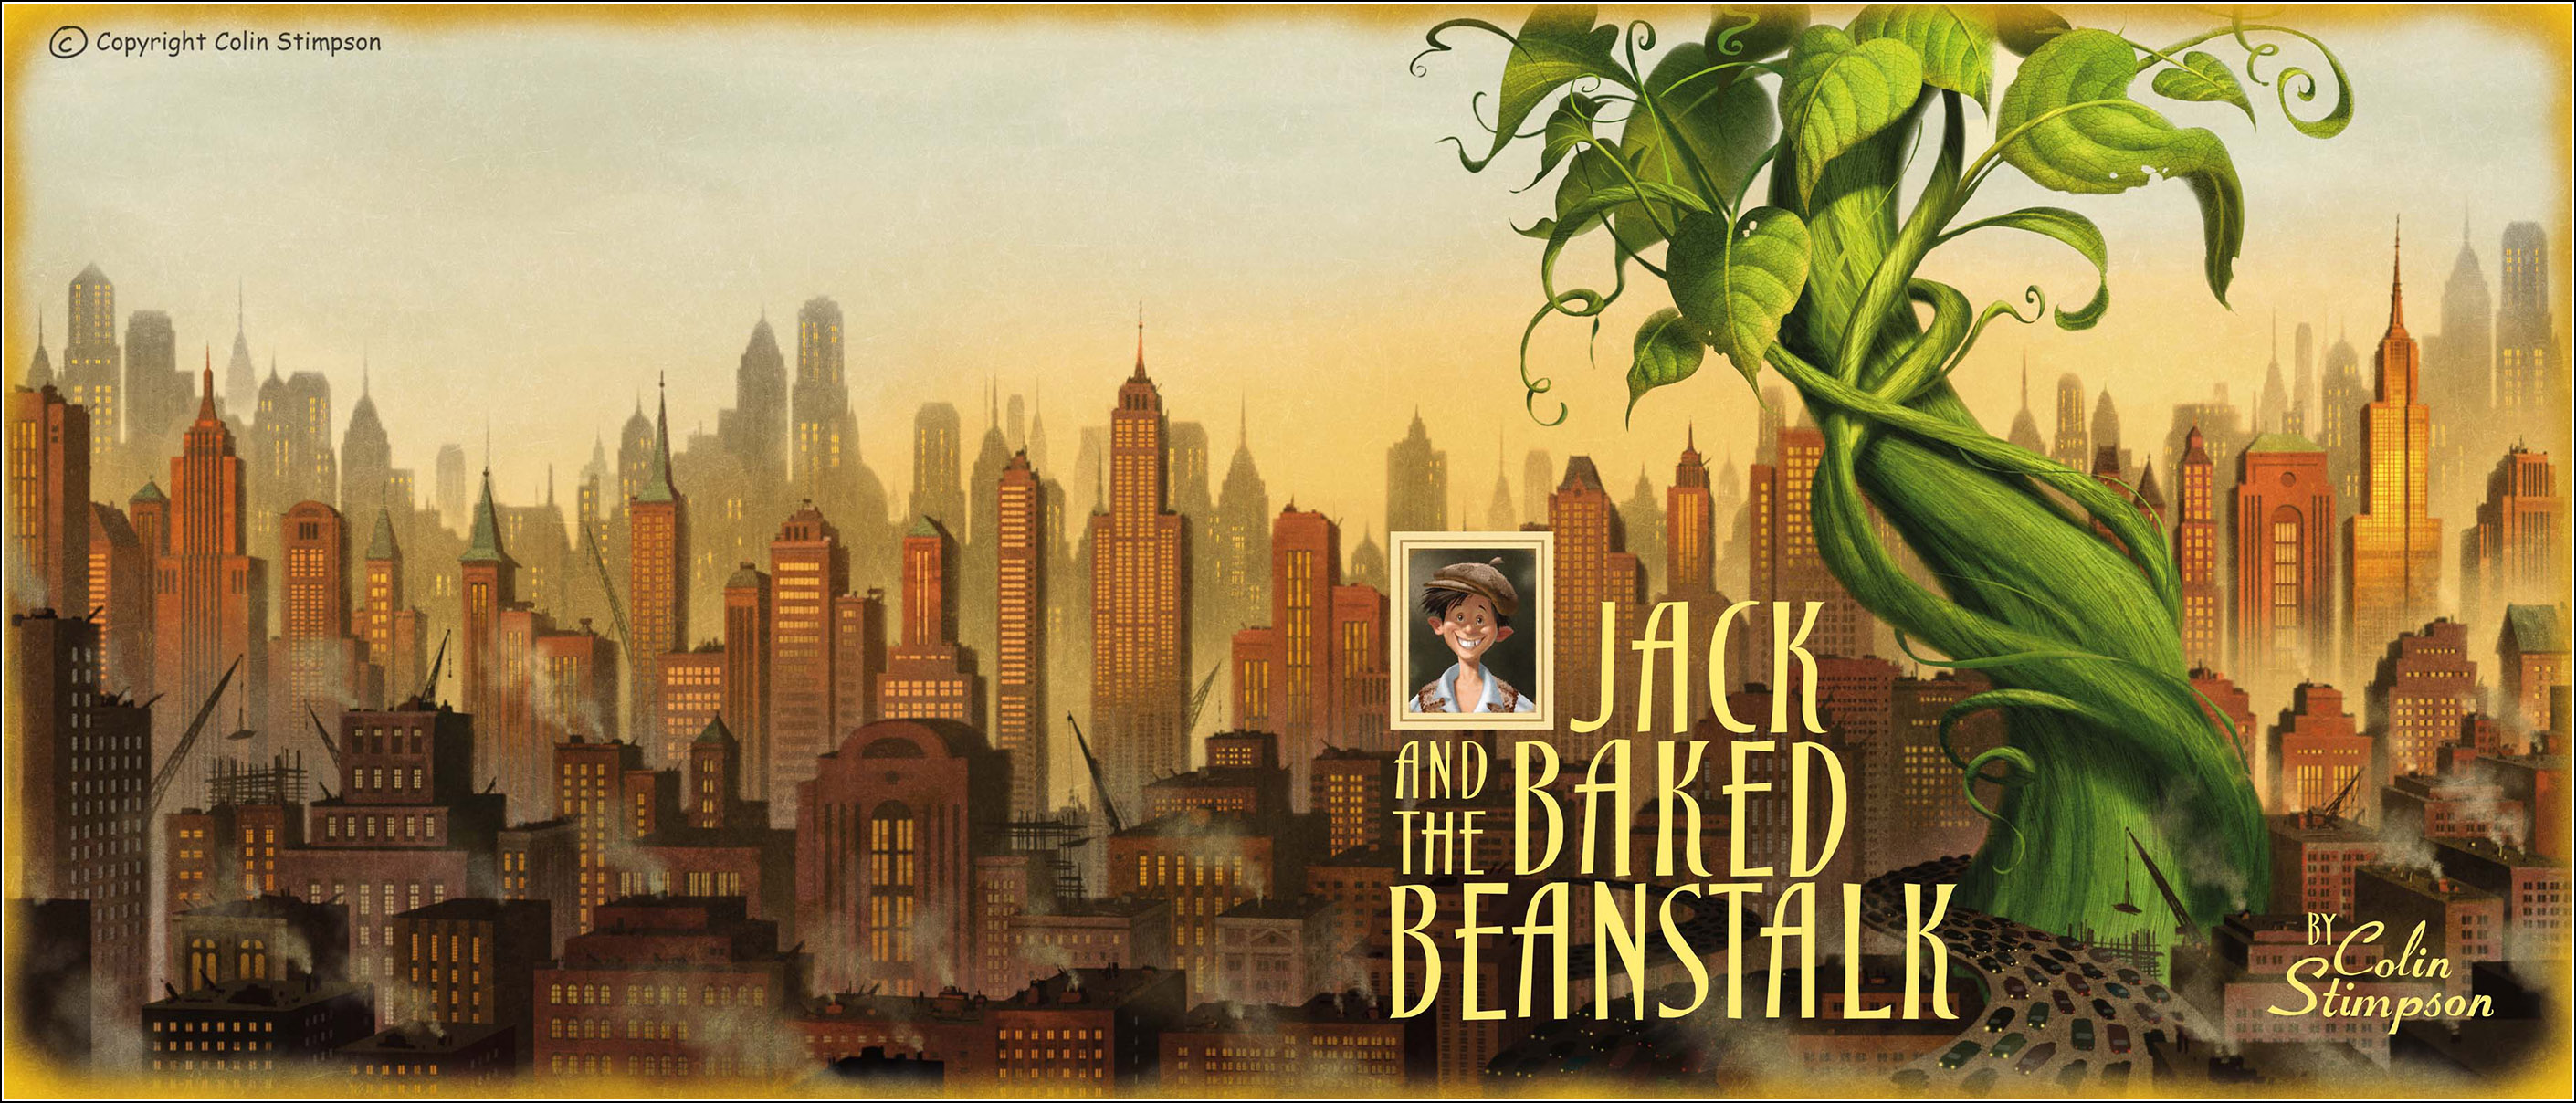 Colin Stimpson, Jack and the Baked Beanstalk